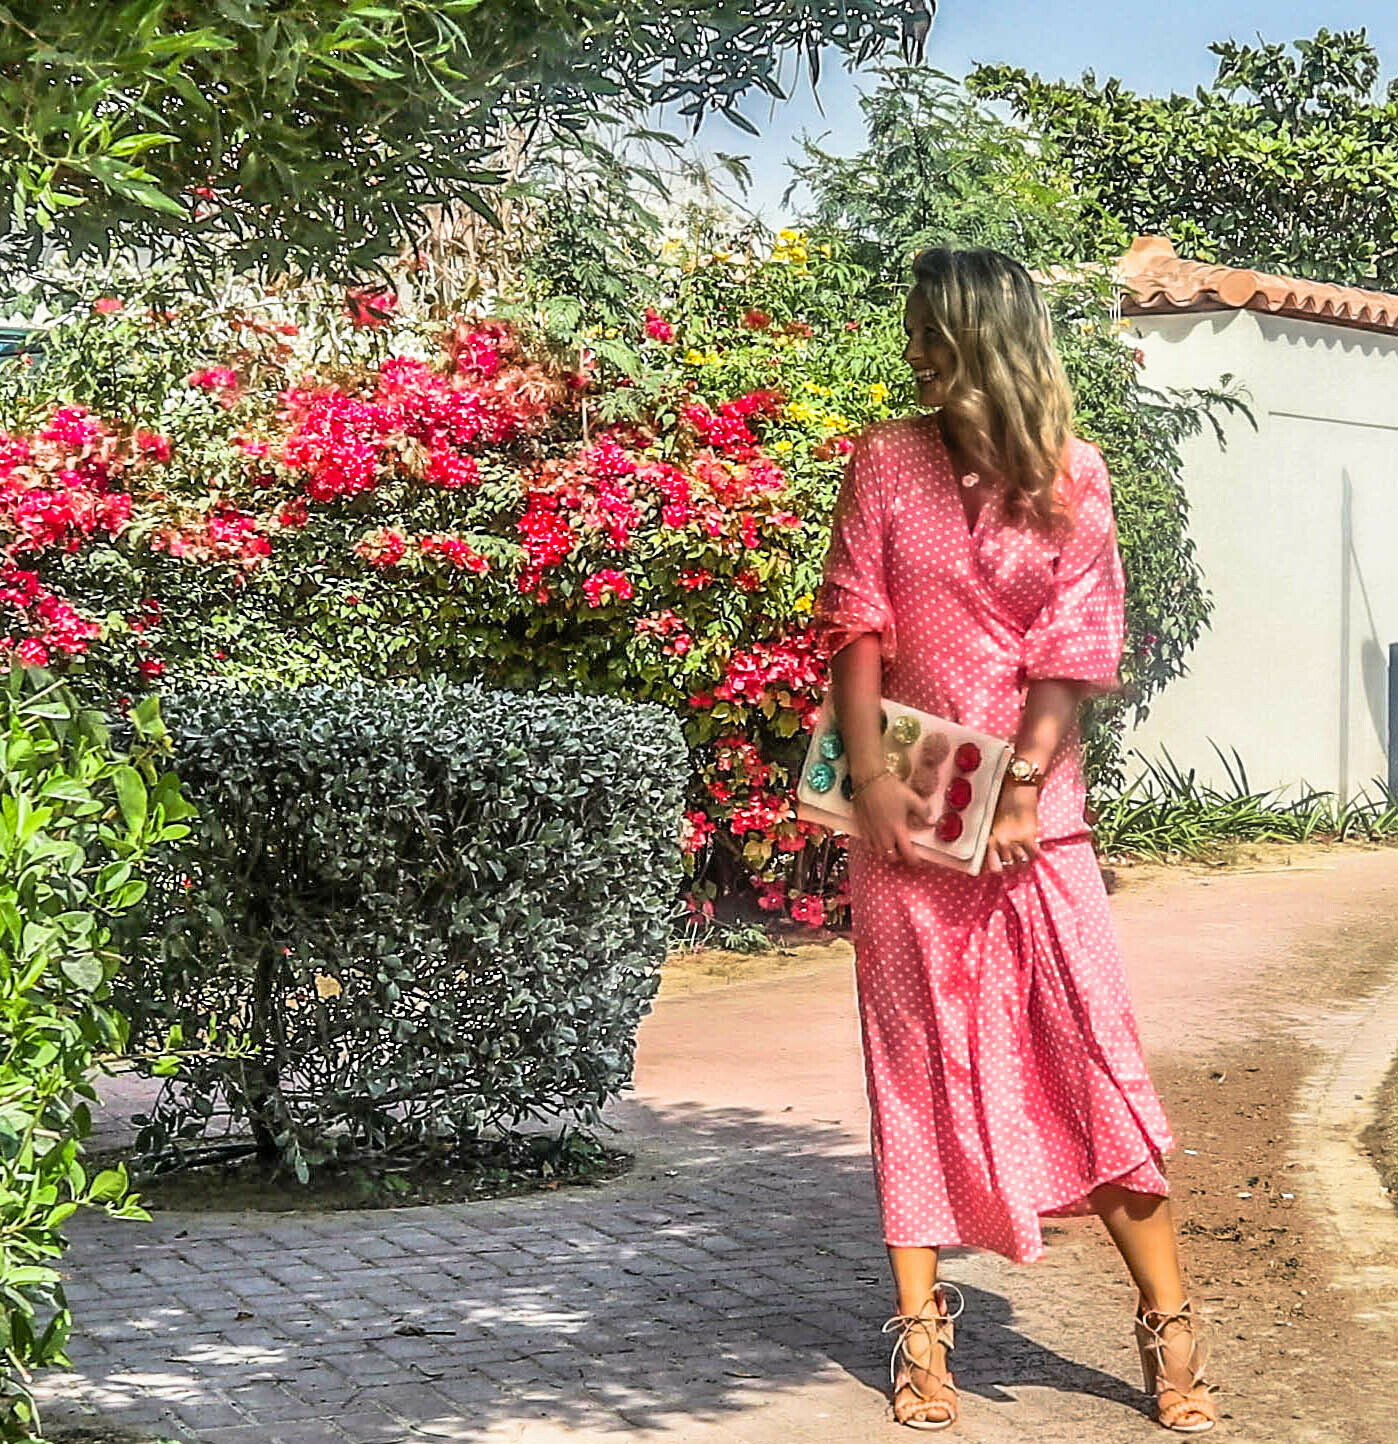 The Classic Wrap Dress: Bright Pink Polka Dot